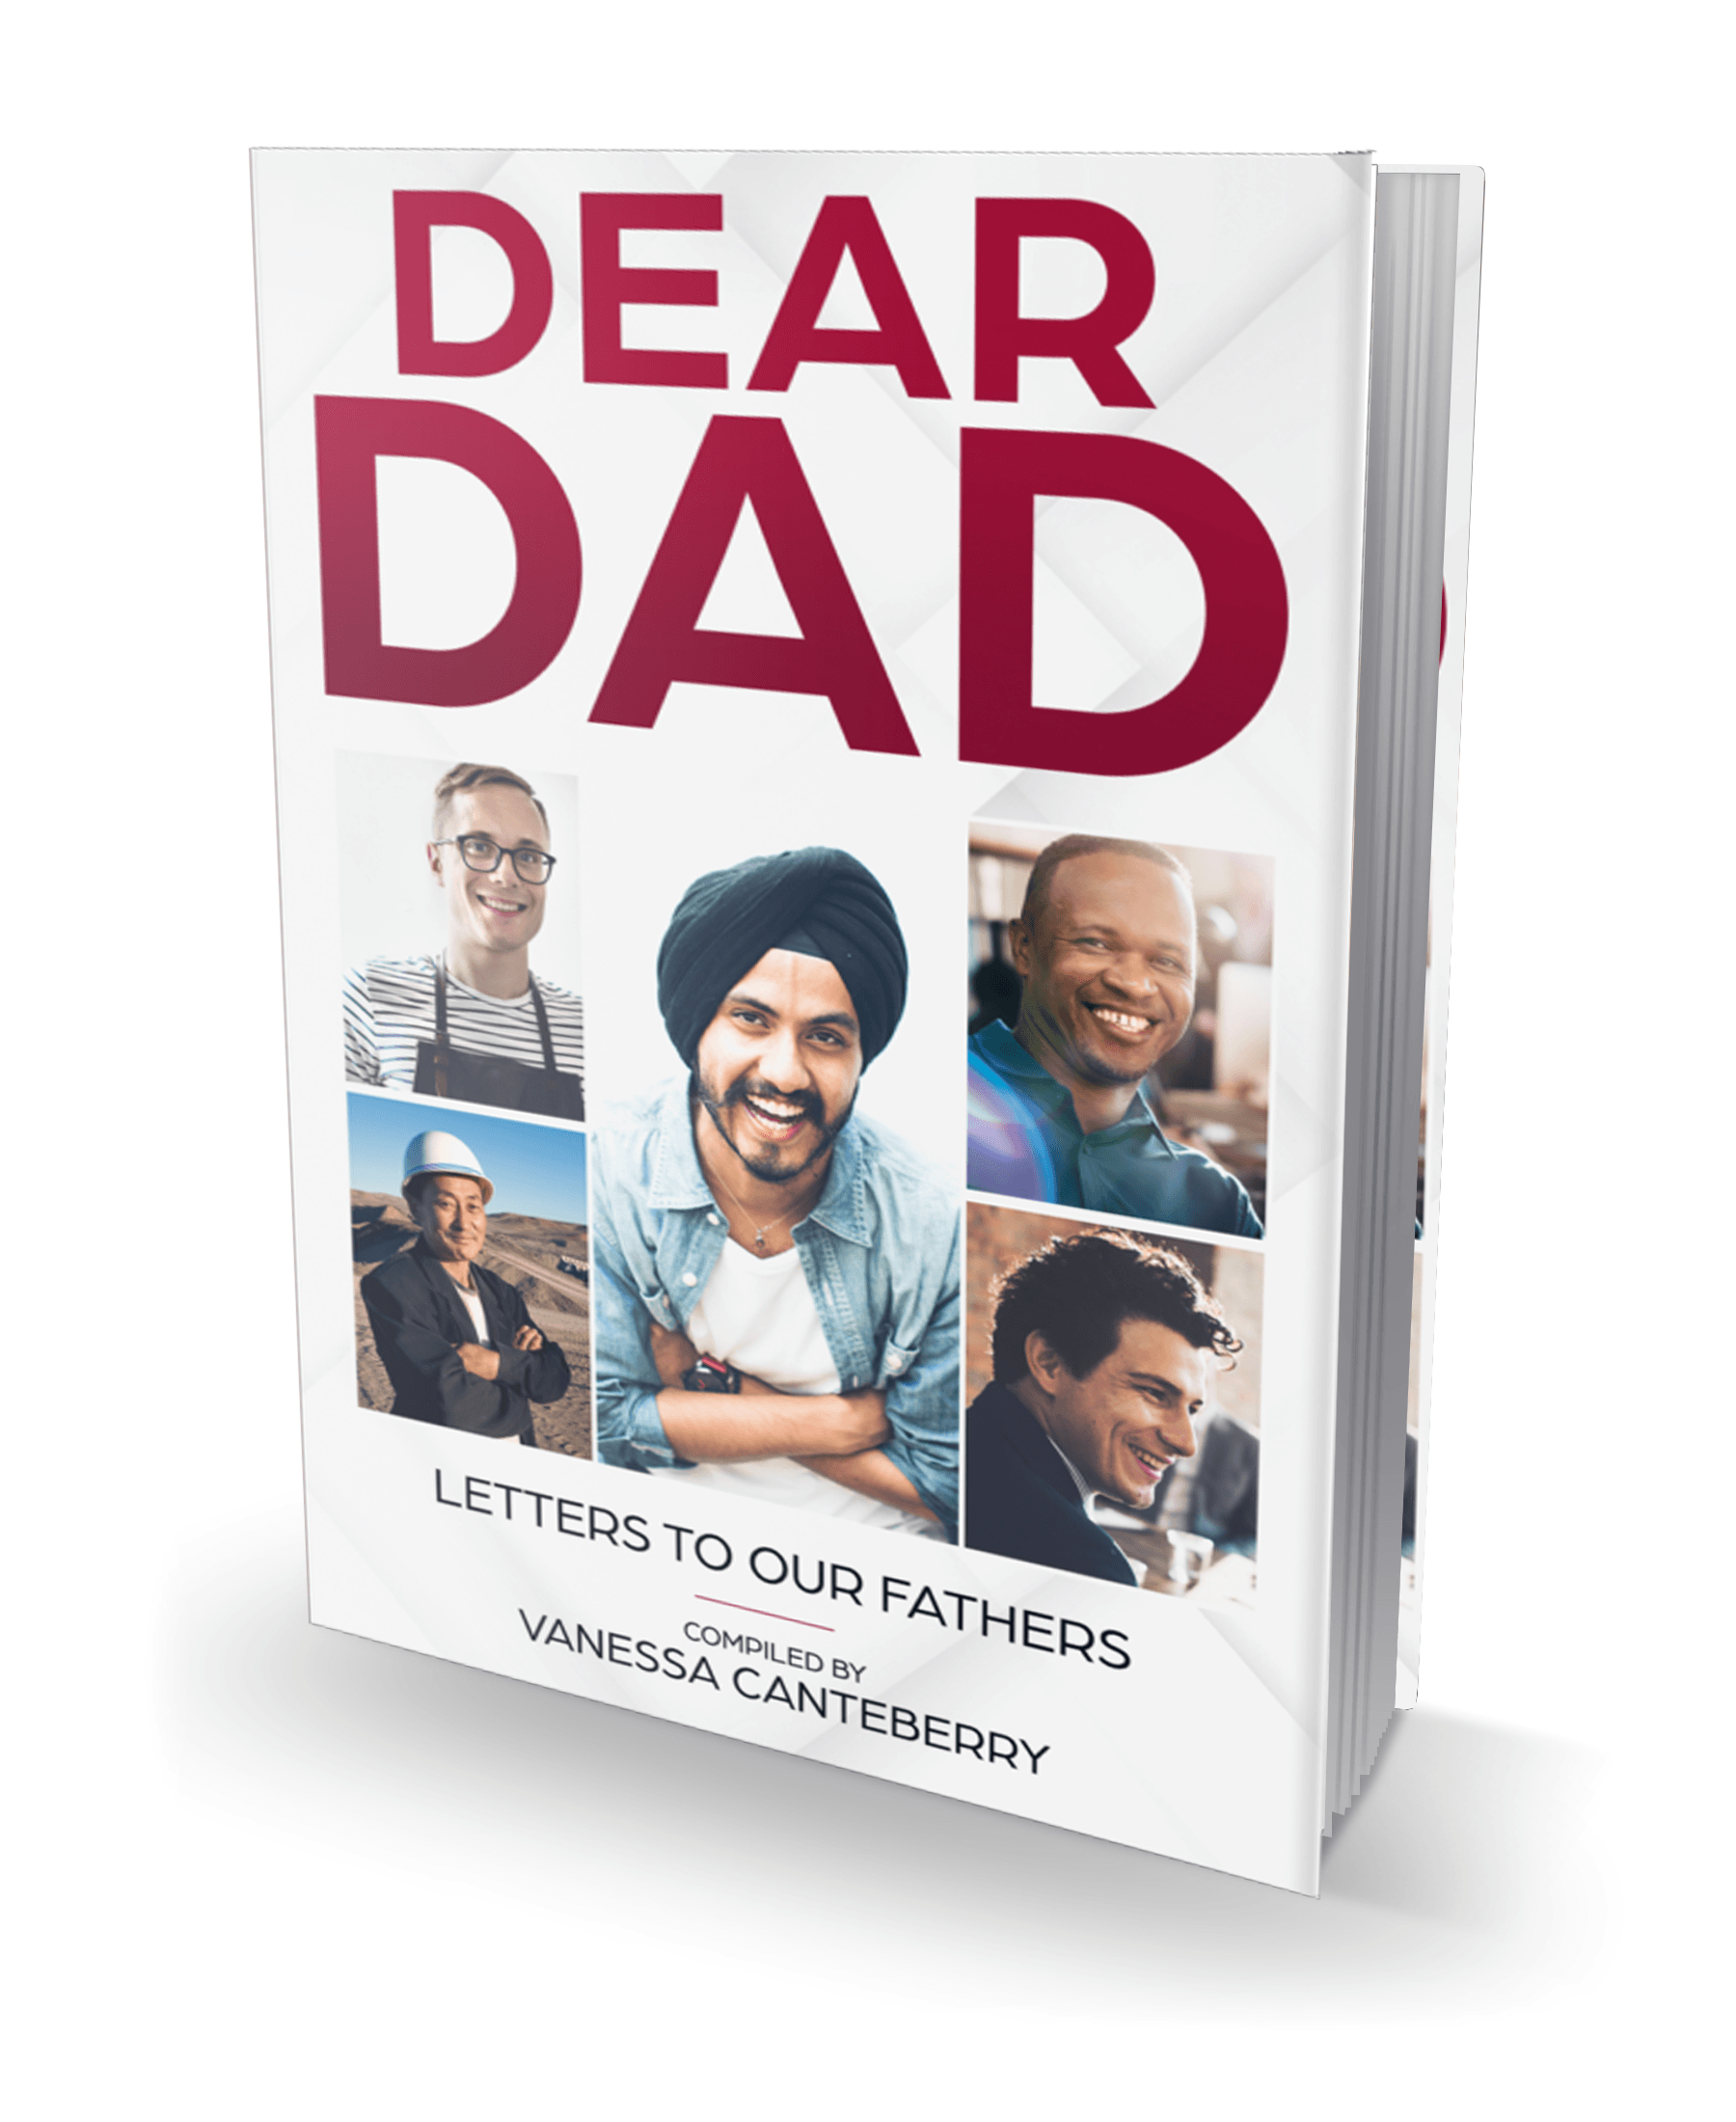 Dear Dad book